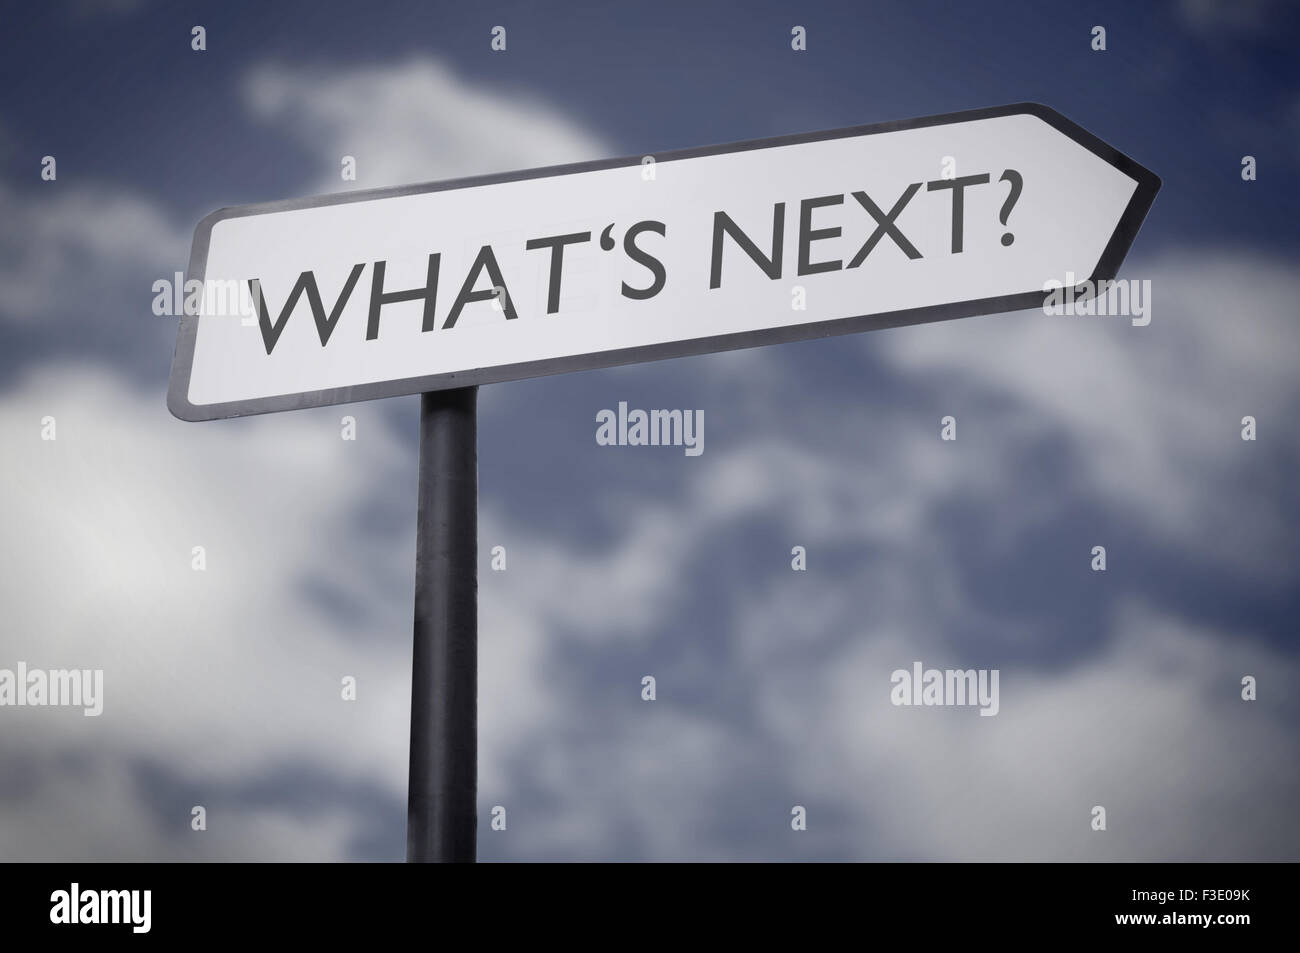 What's next - Stock Image